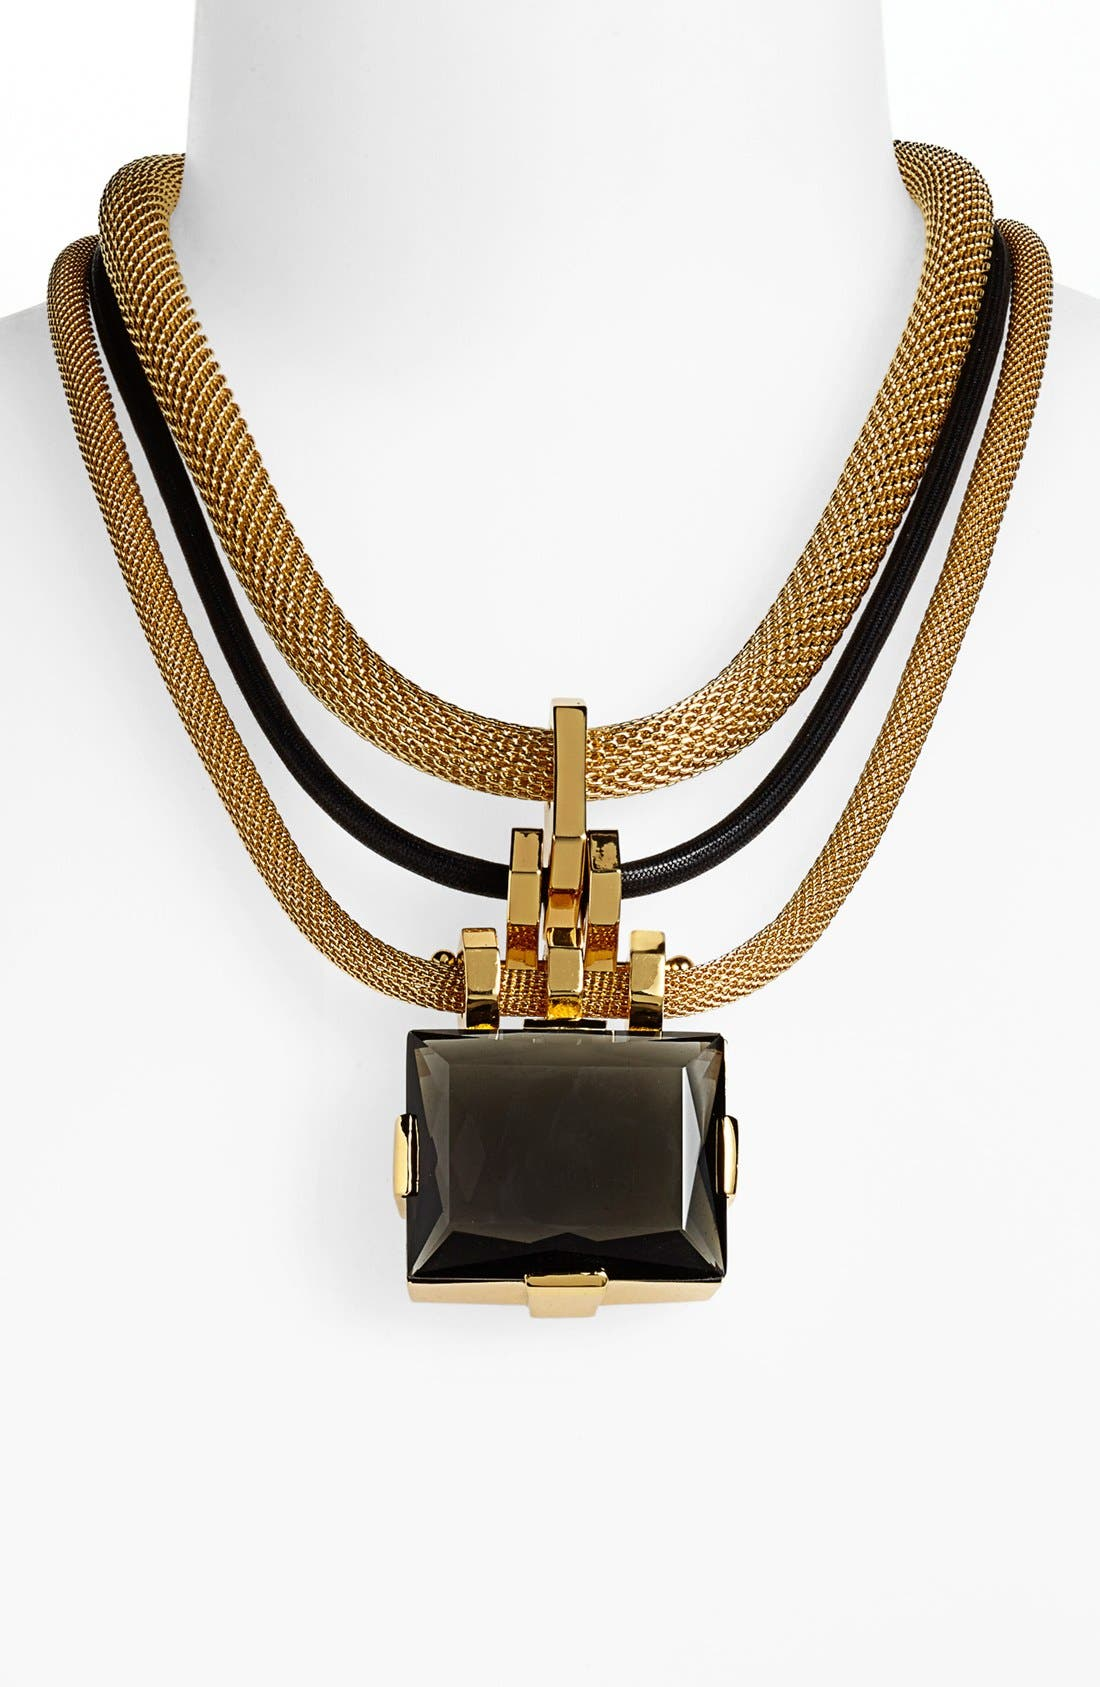 Alternate Image 1 Selected - Vince Camuto 'Tour of Duty' Multistrand Pendant Necklace